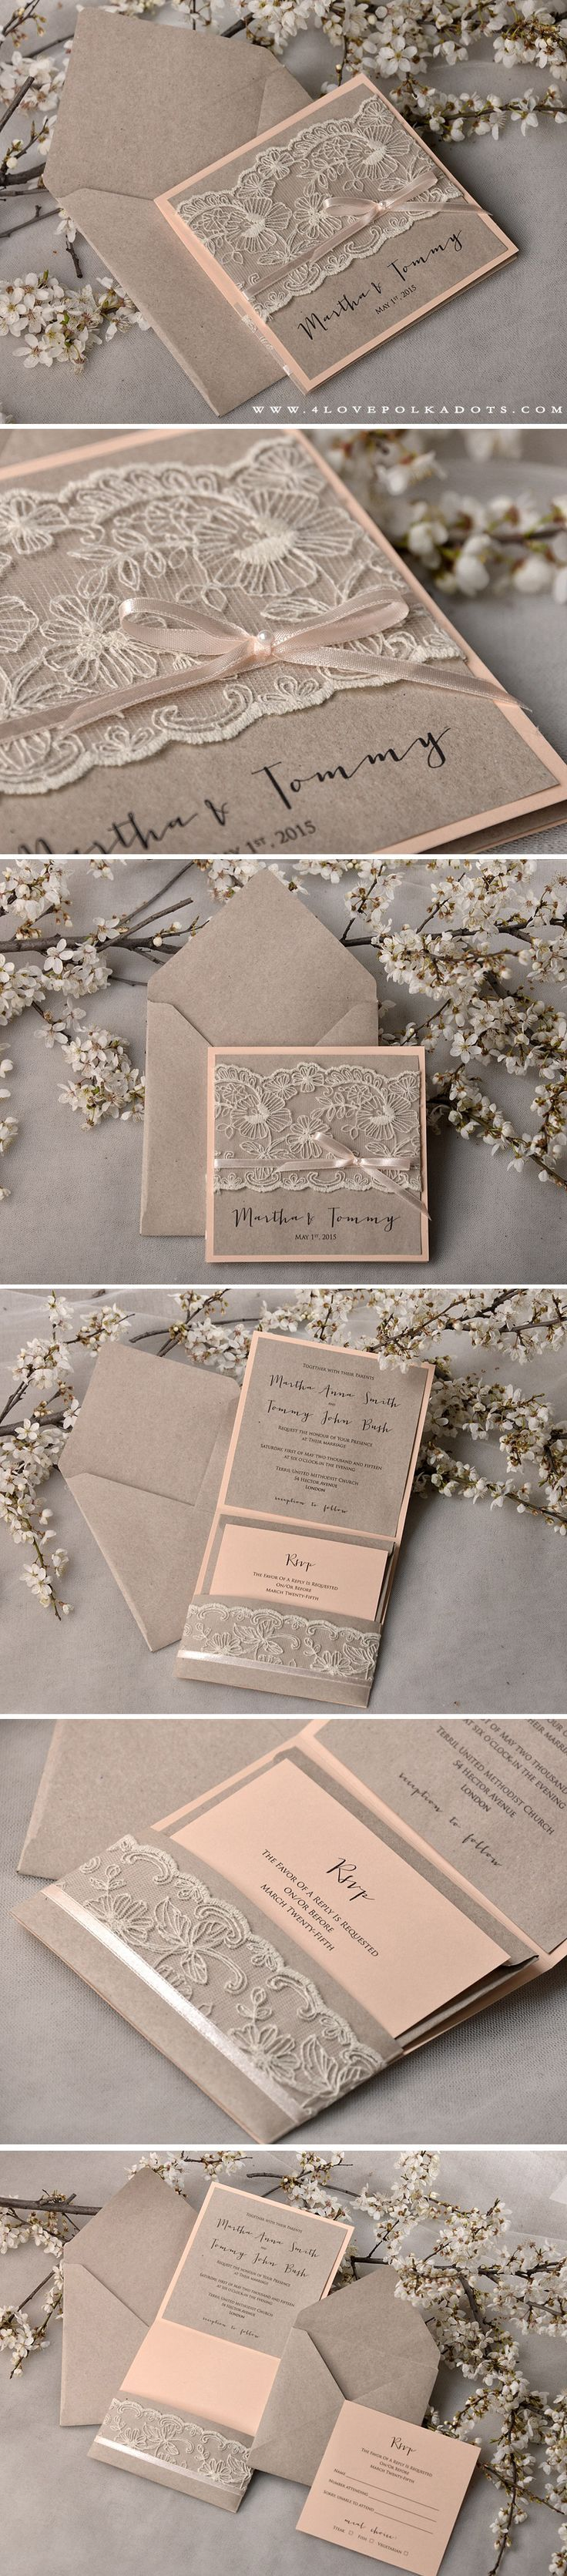 Peach & Eco Lace Wedding Invitations #handmade #summerwedding #weddingideas